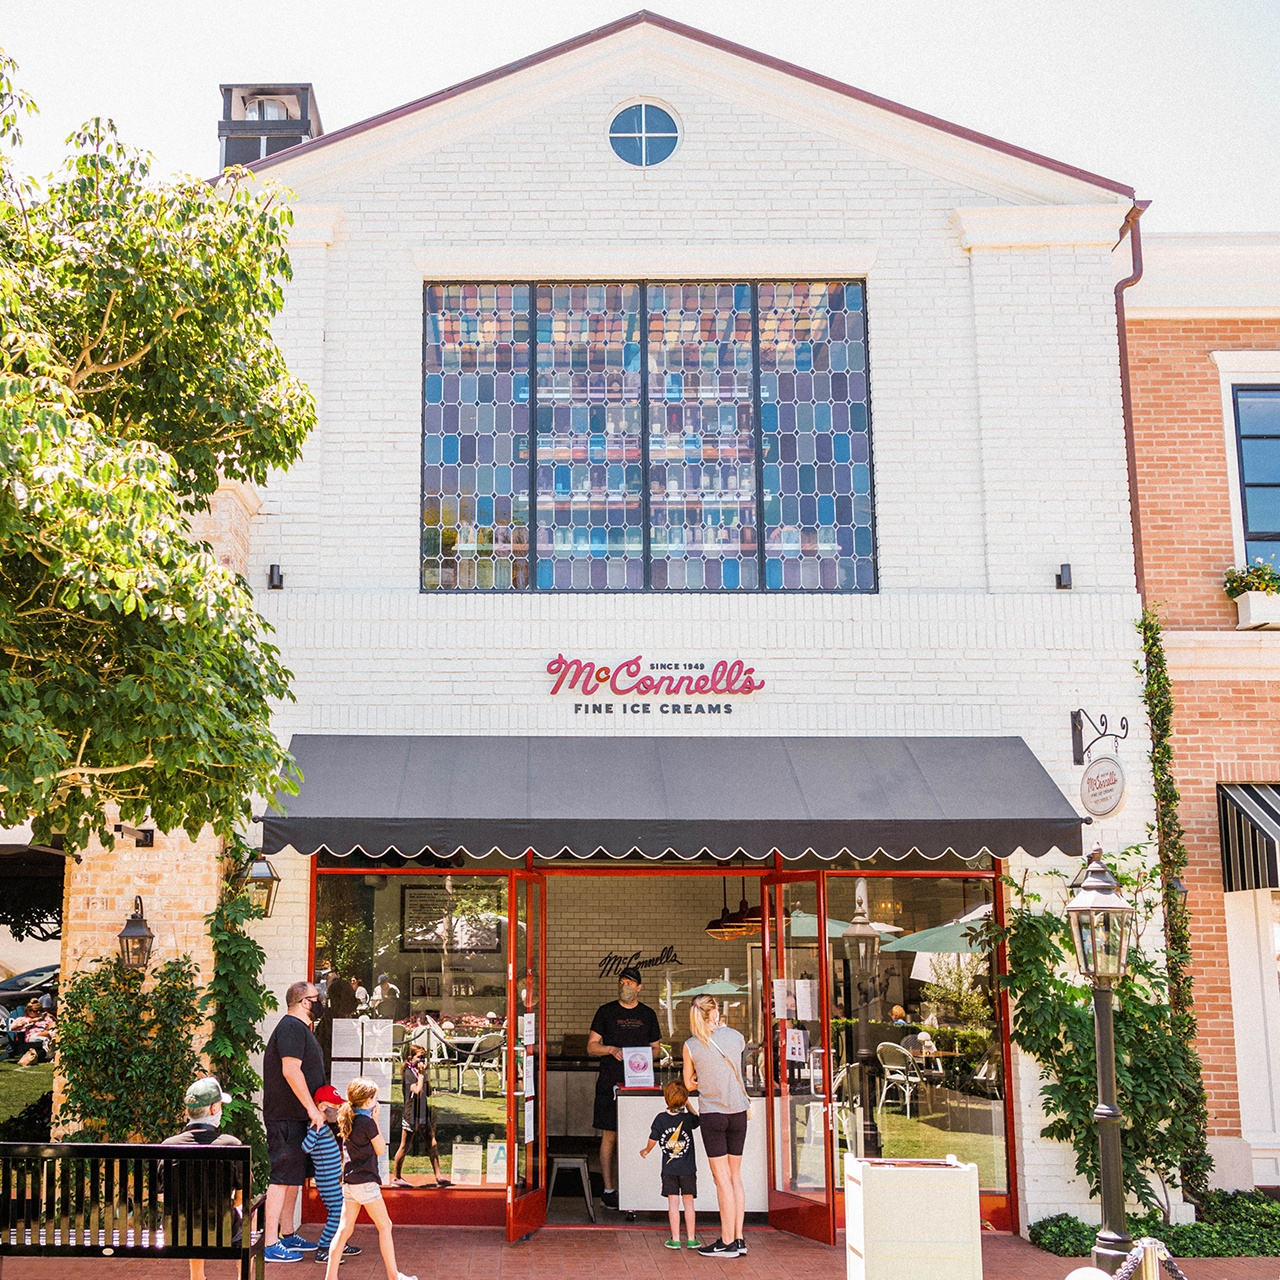 Beat the Heat this Labor Day at McConnell's Fine Ice Creams at Palisades Village